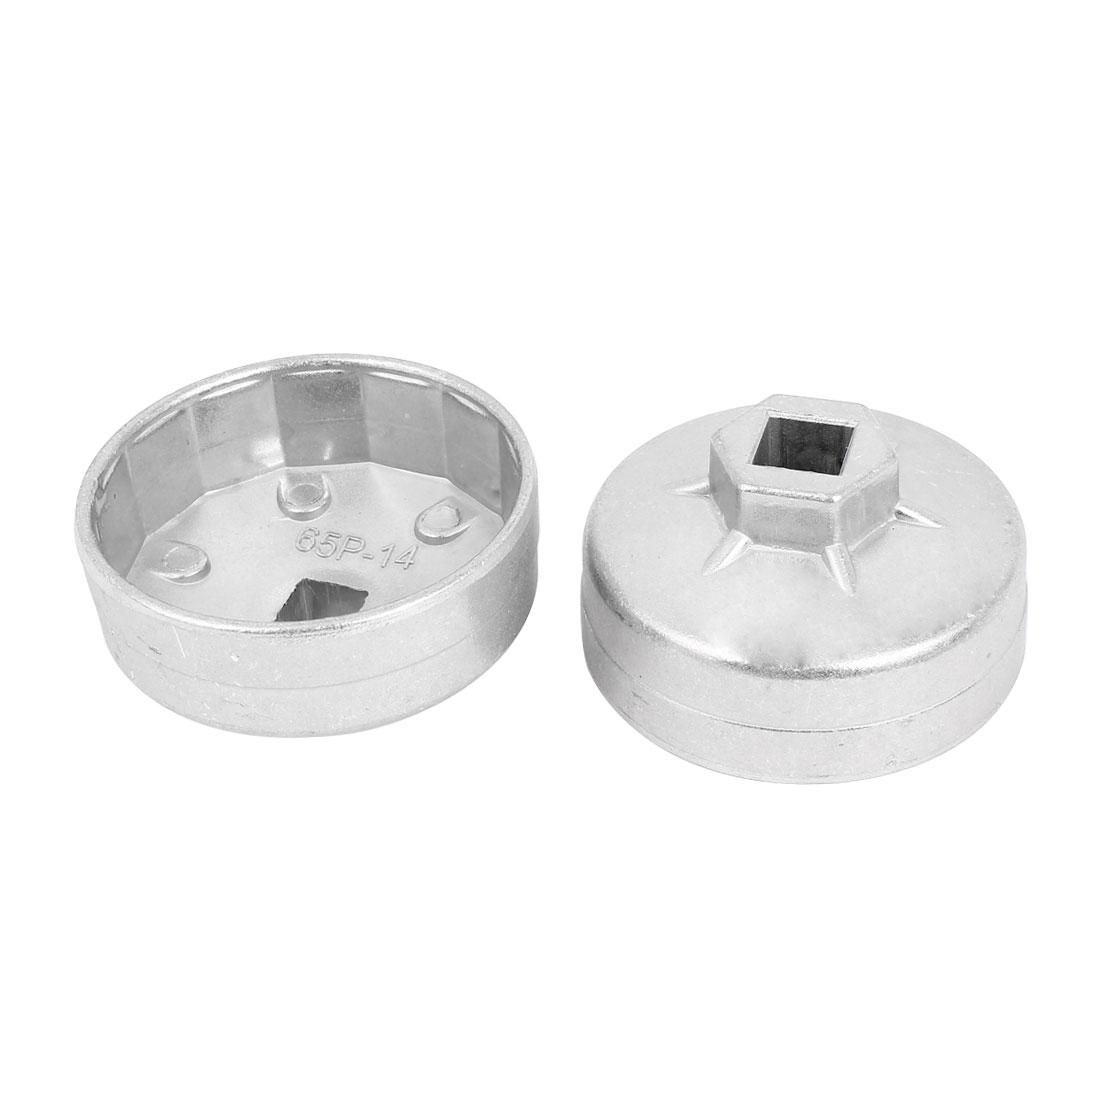 Cap Style 65mm Inside Dia 13mm Drive 14 Flute Oil Filter Cap Wrench Cup Socket Tool 2 Pcs